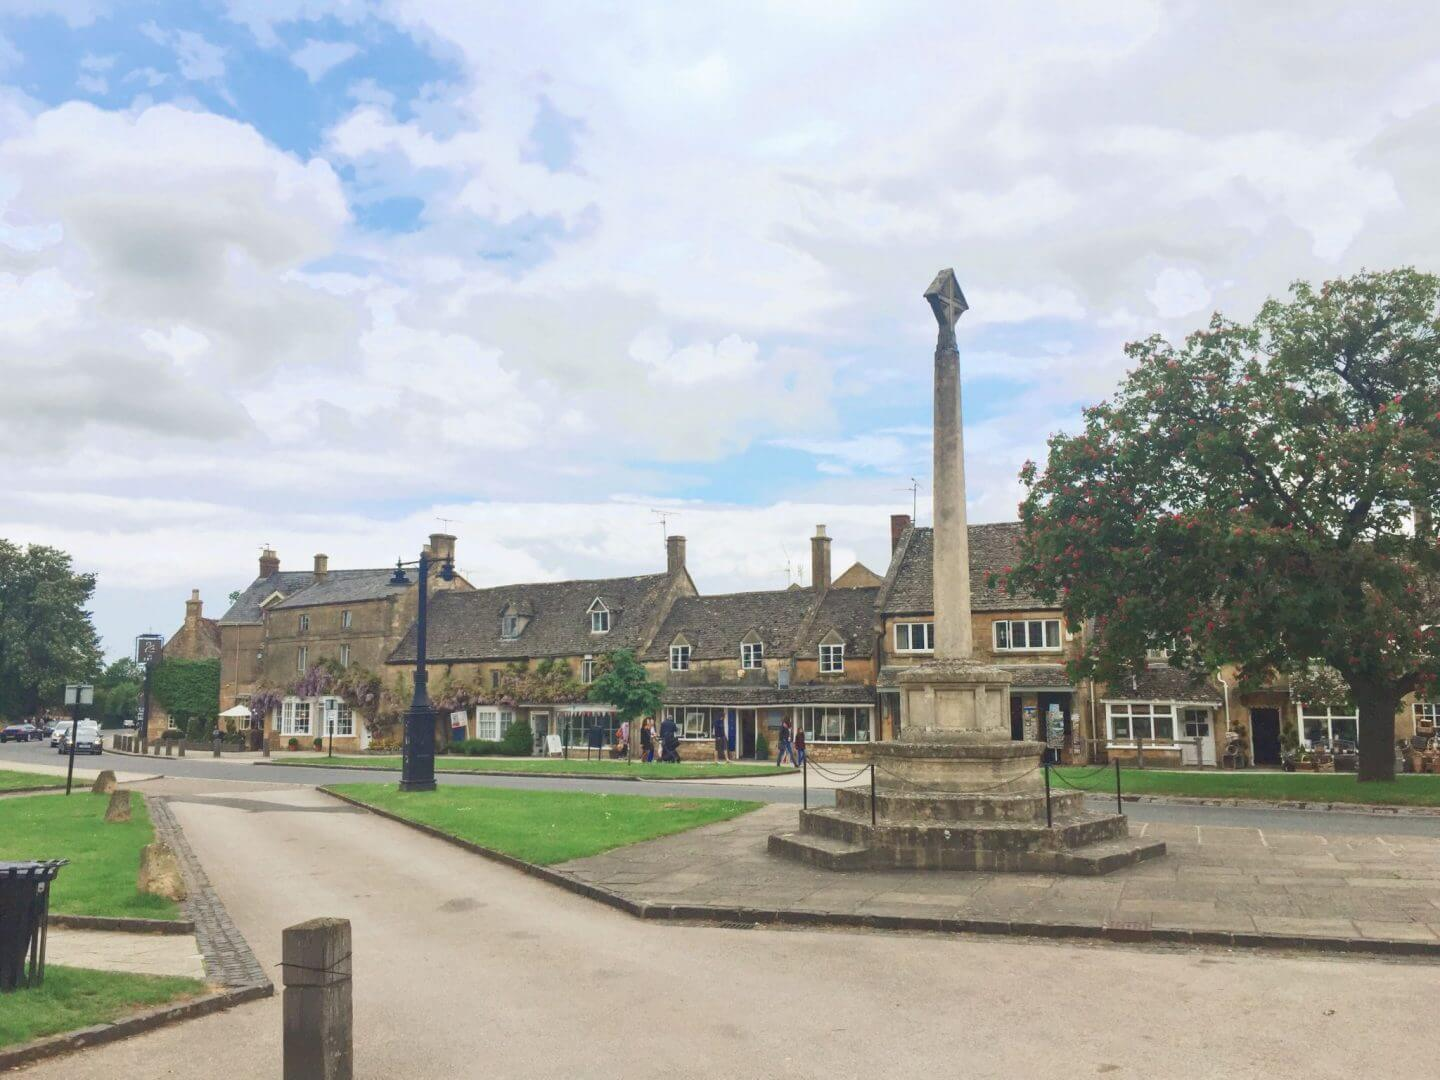 the centre of Bourton with beautiful houses and a stone memorial